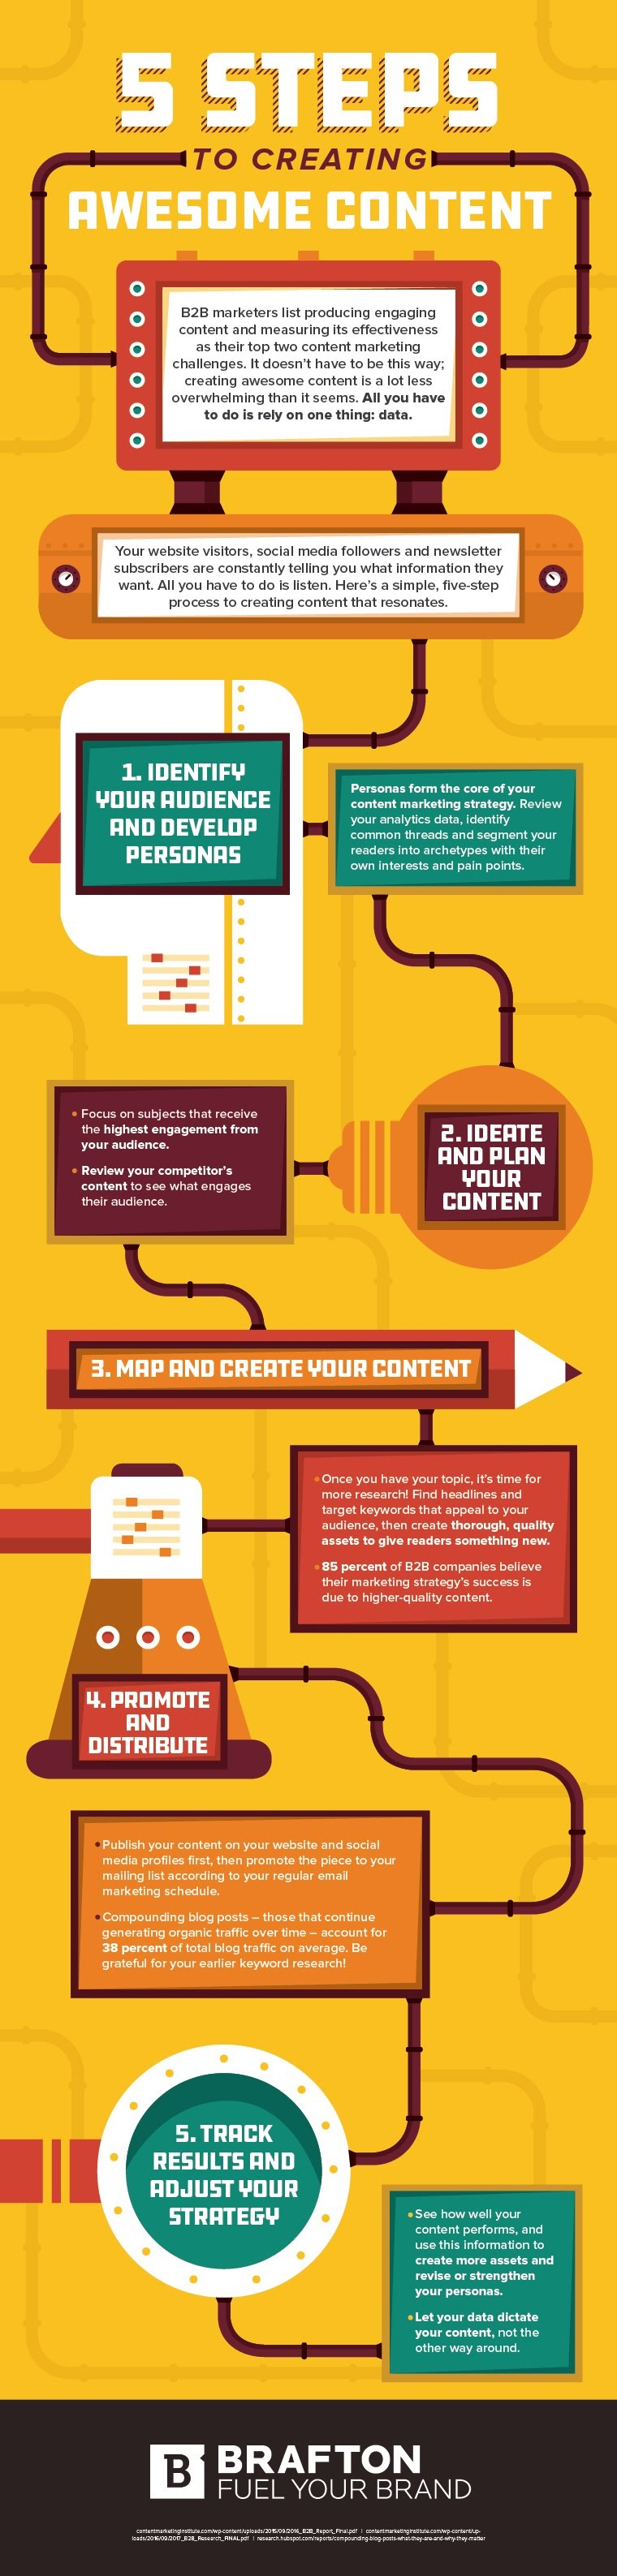 Infographic: 5 Steps to Creating Awesome Content